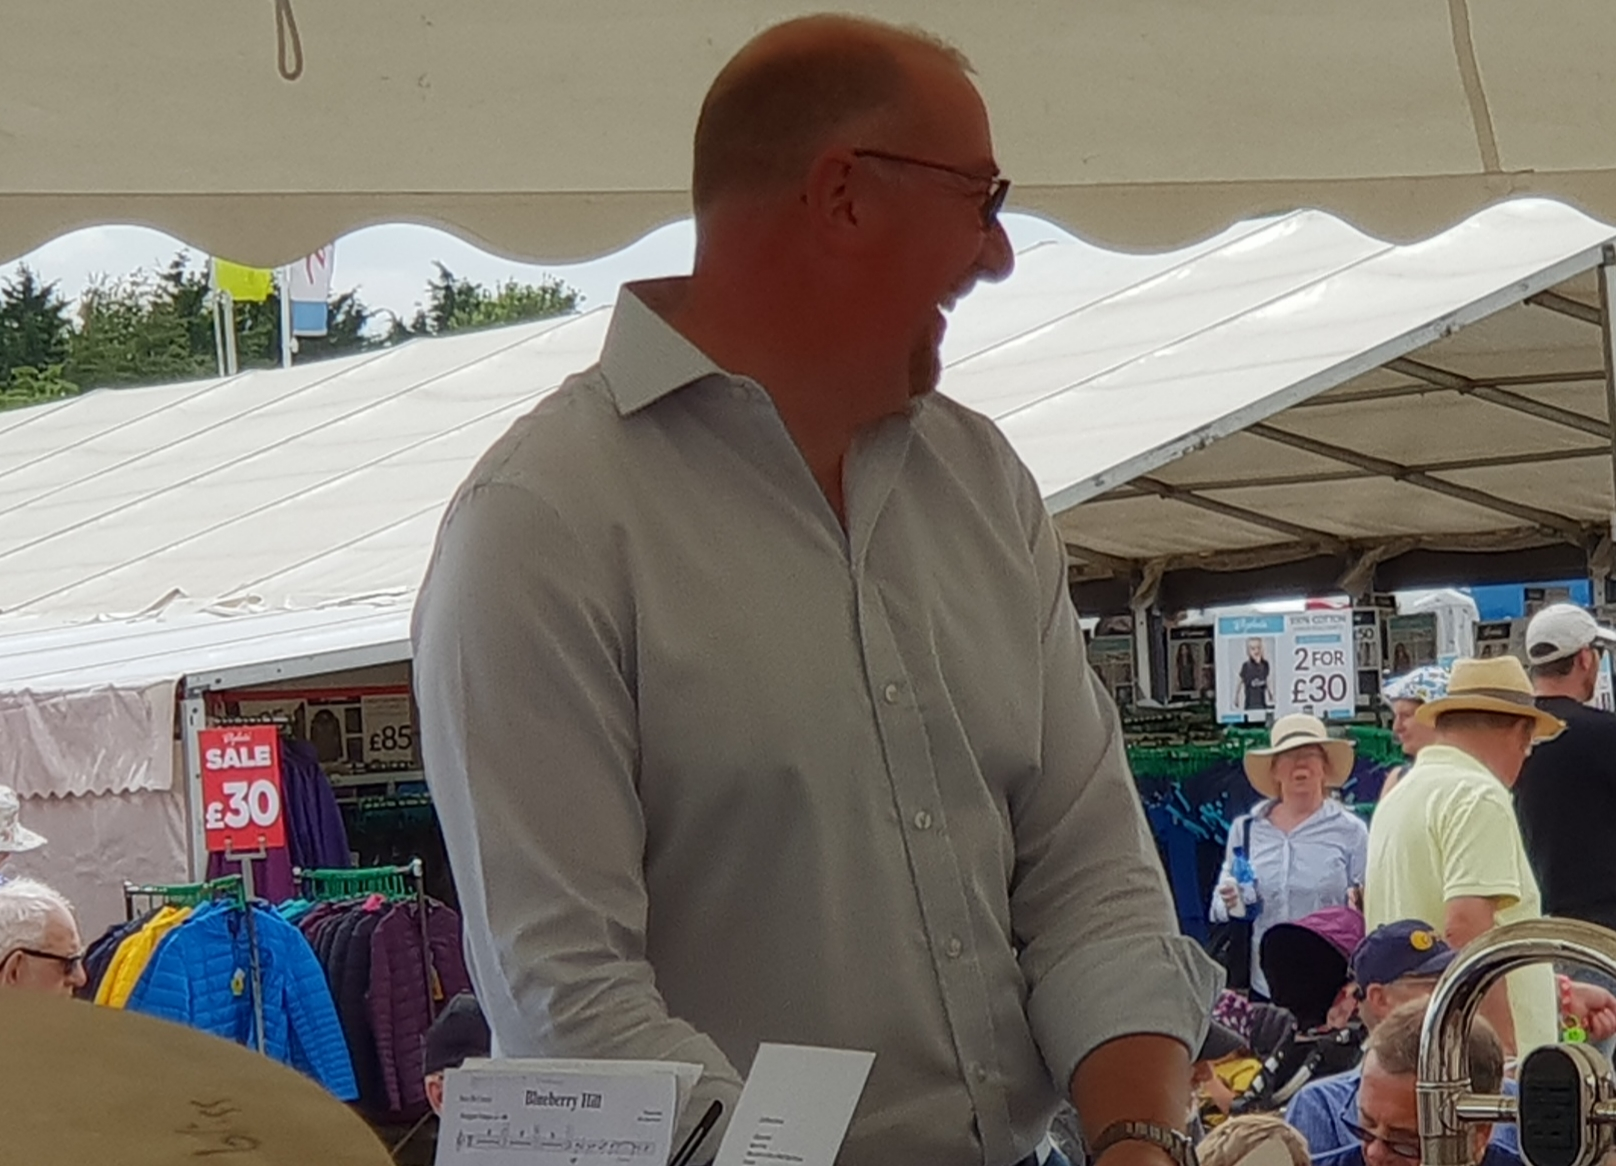 Driffield Show July 2018 MD struggles on hottest day!